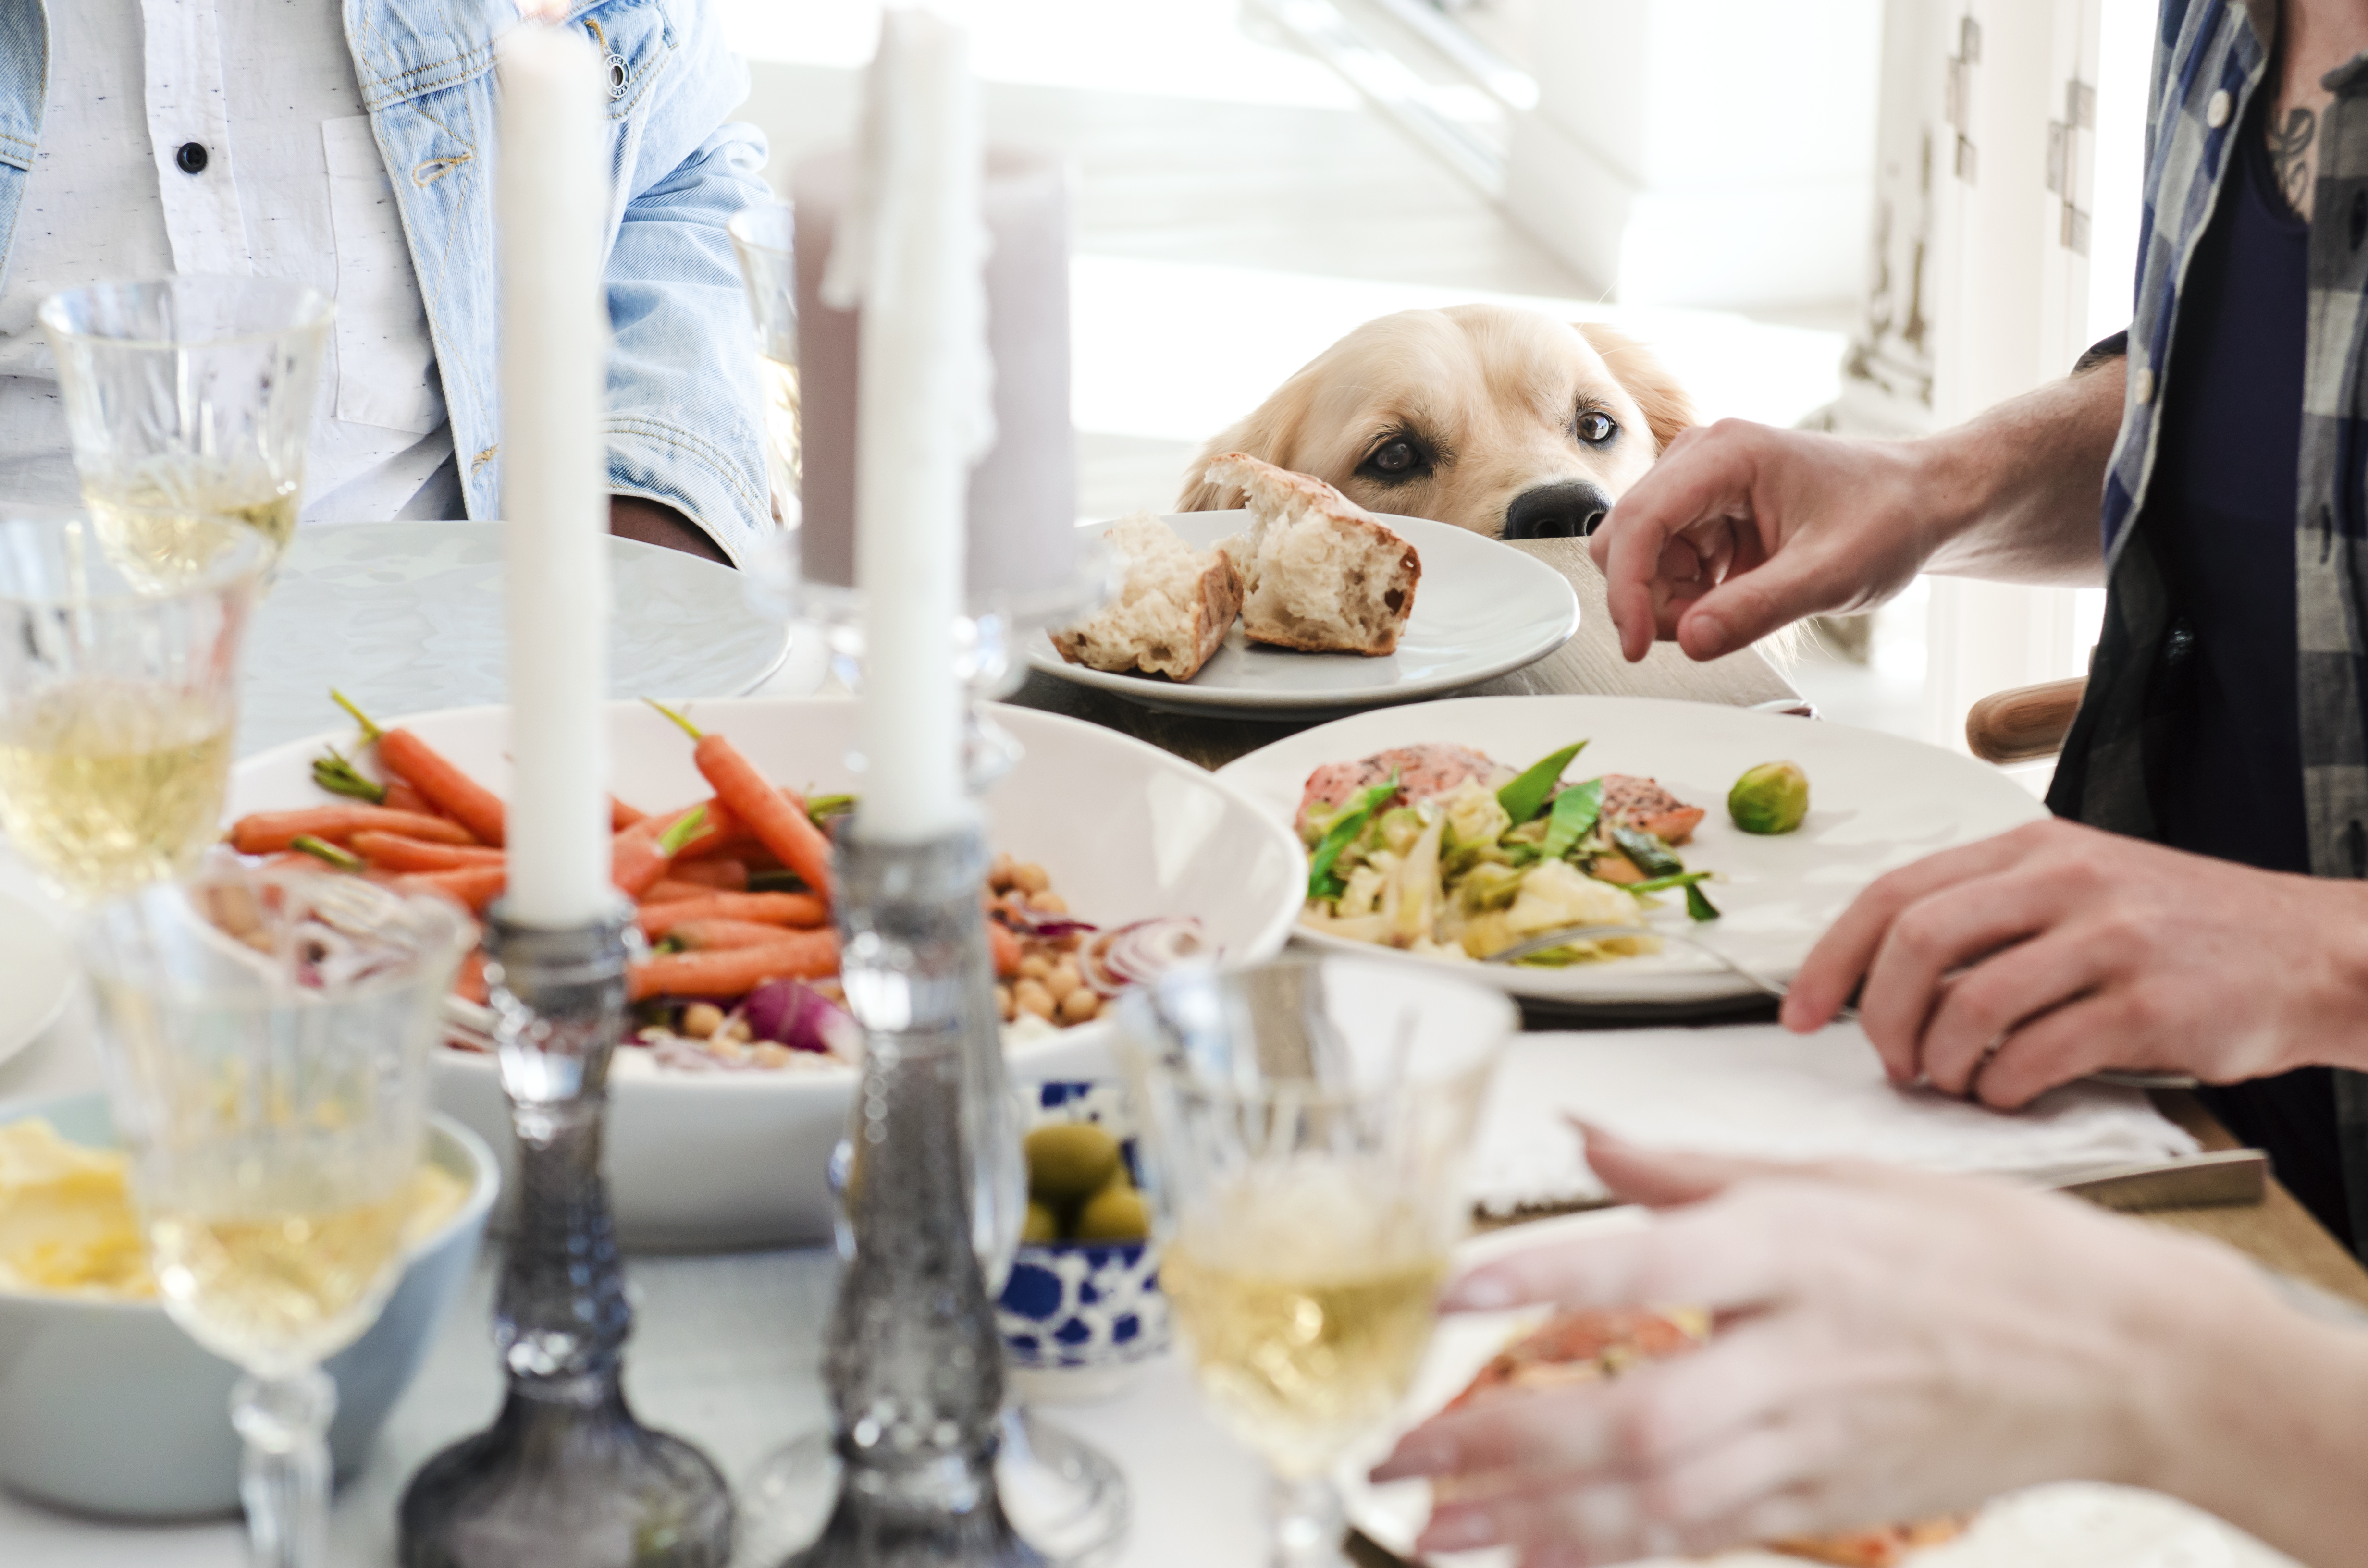 Hosting a stress-free Easter meal in style